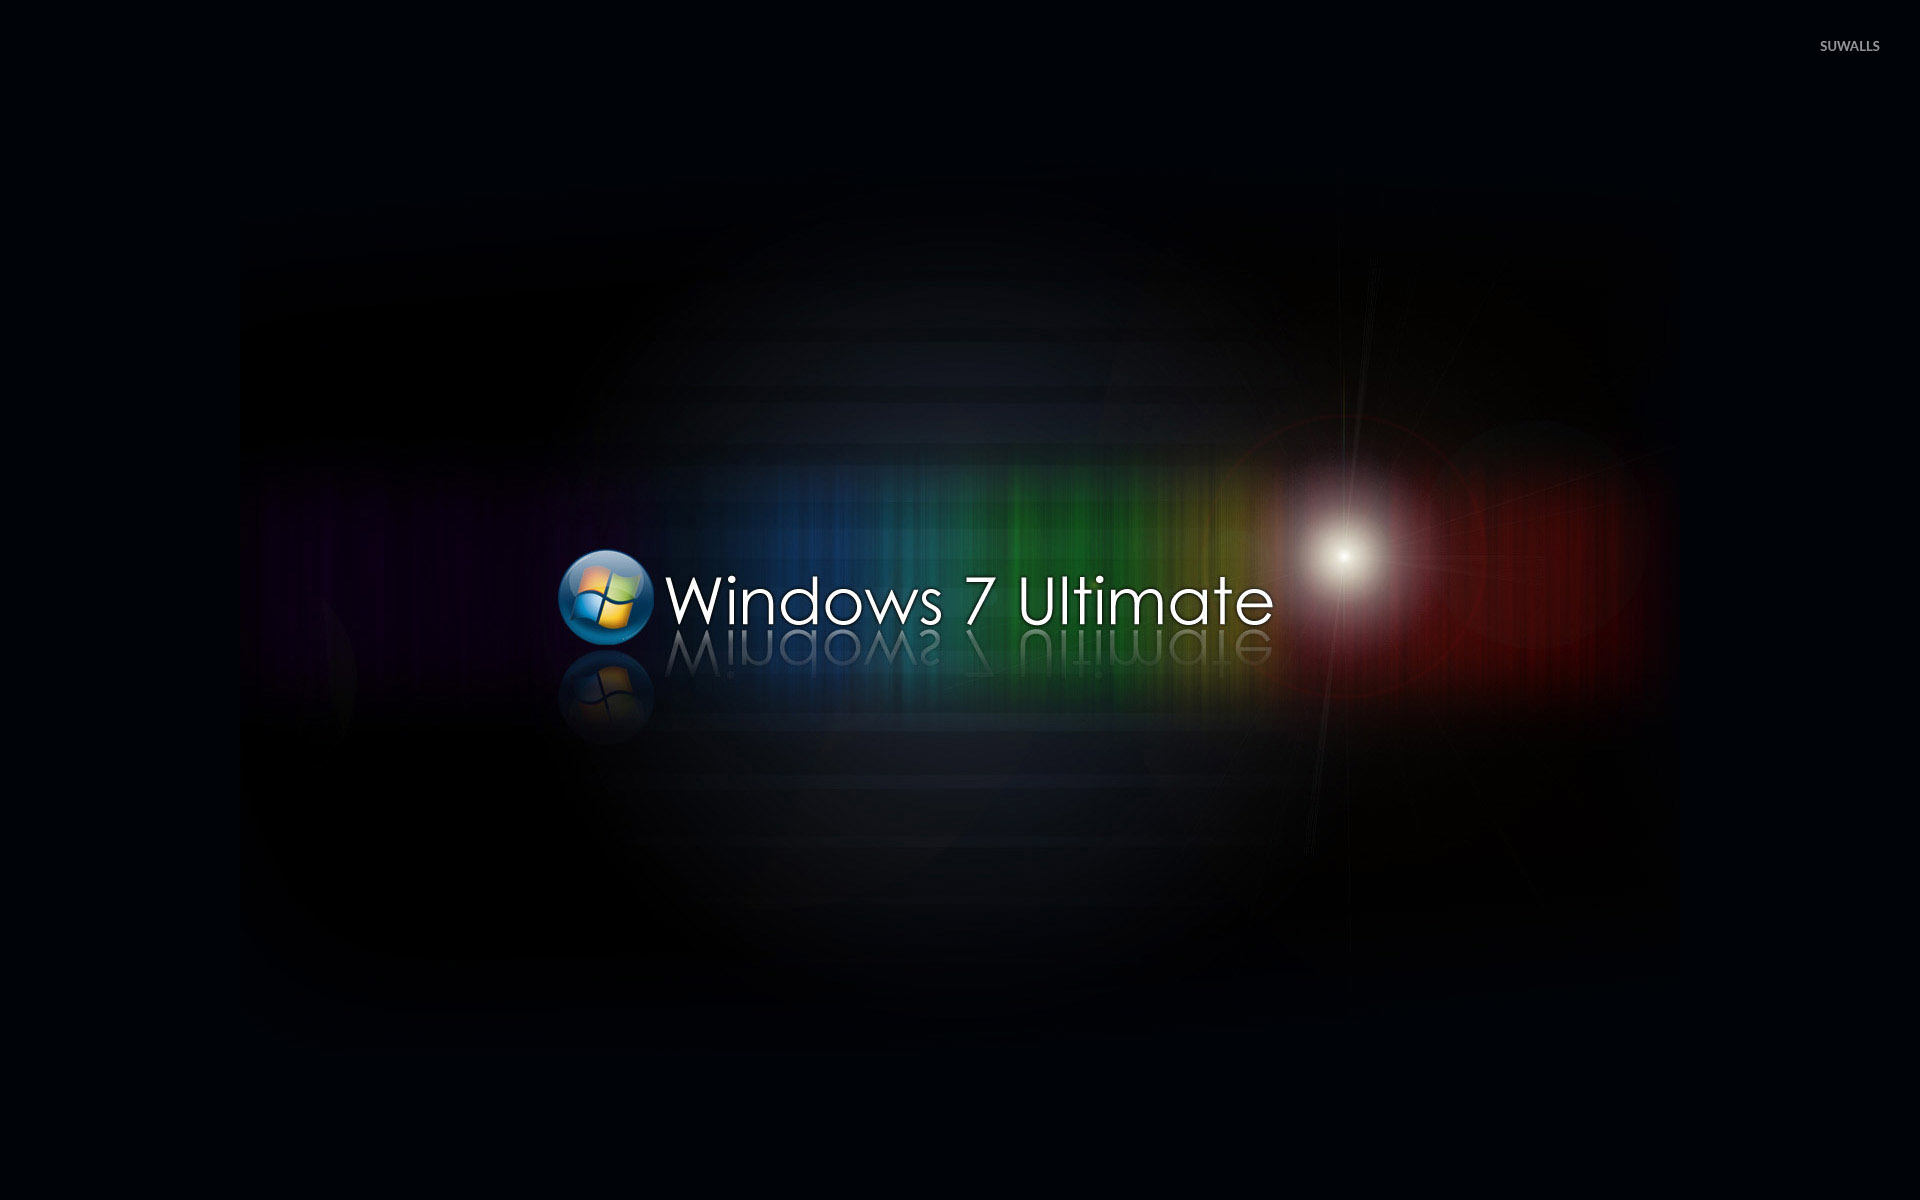 Windows 7 Ultimate 3 Wallpaper Computer Wallpapers 3396